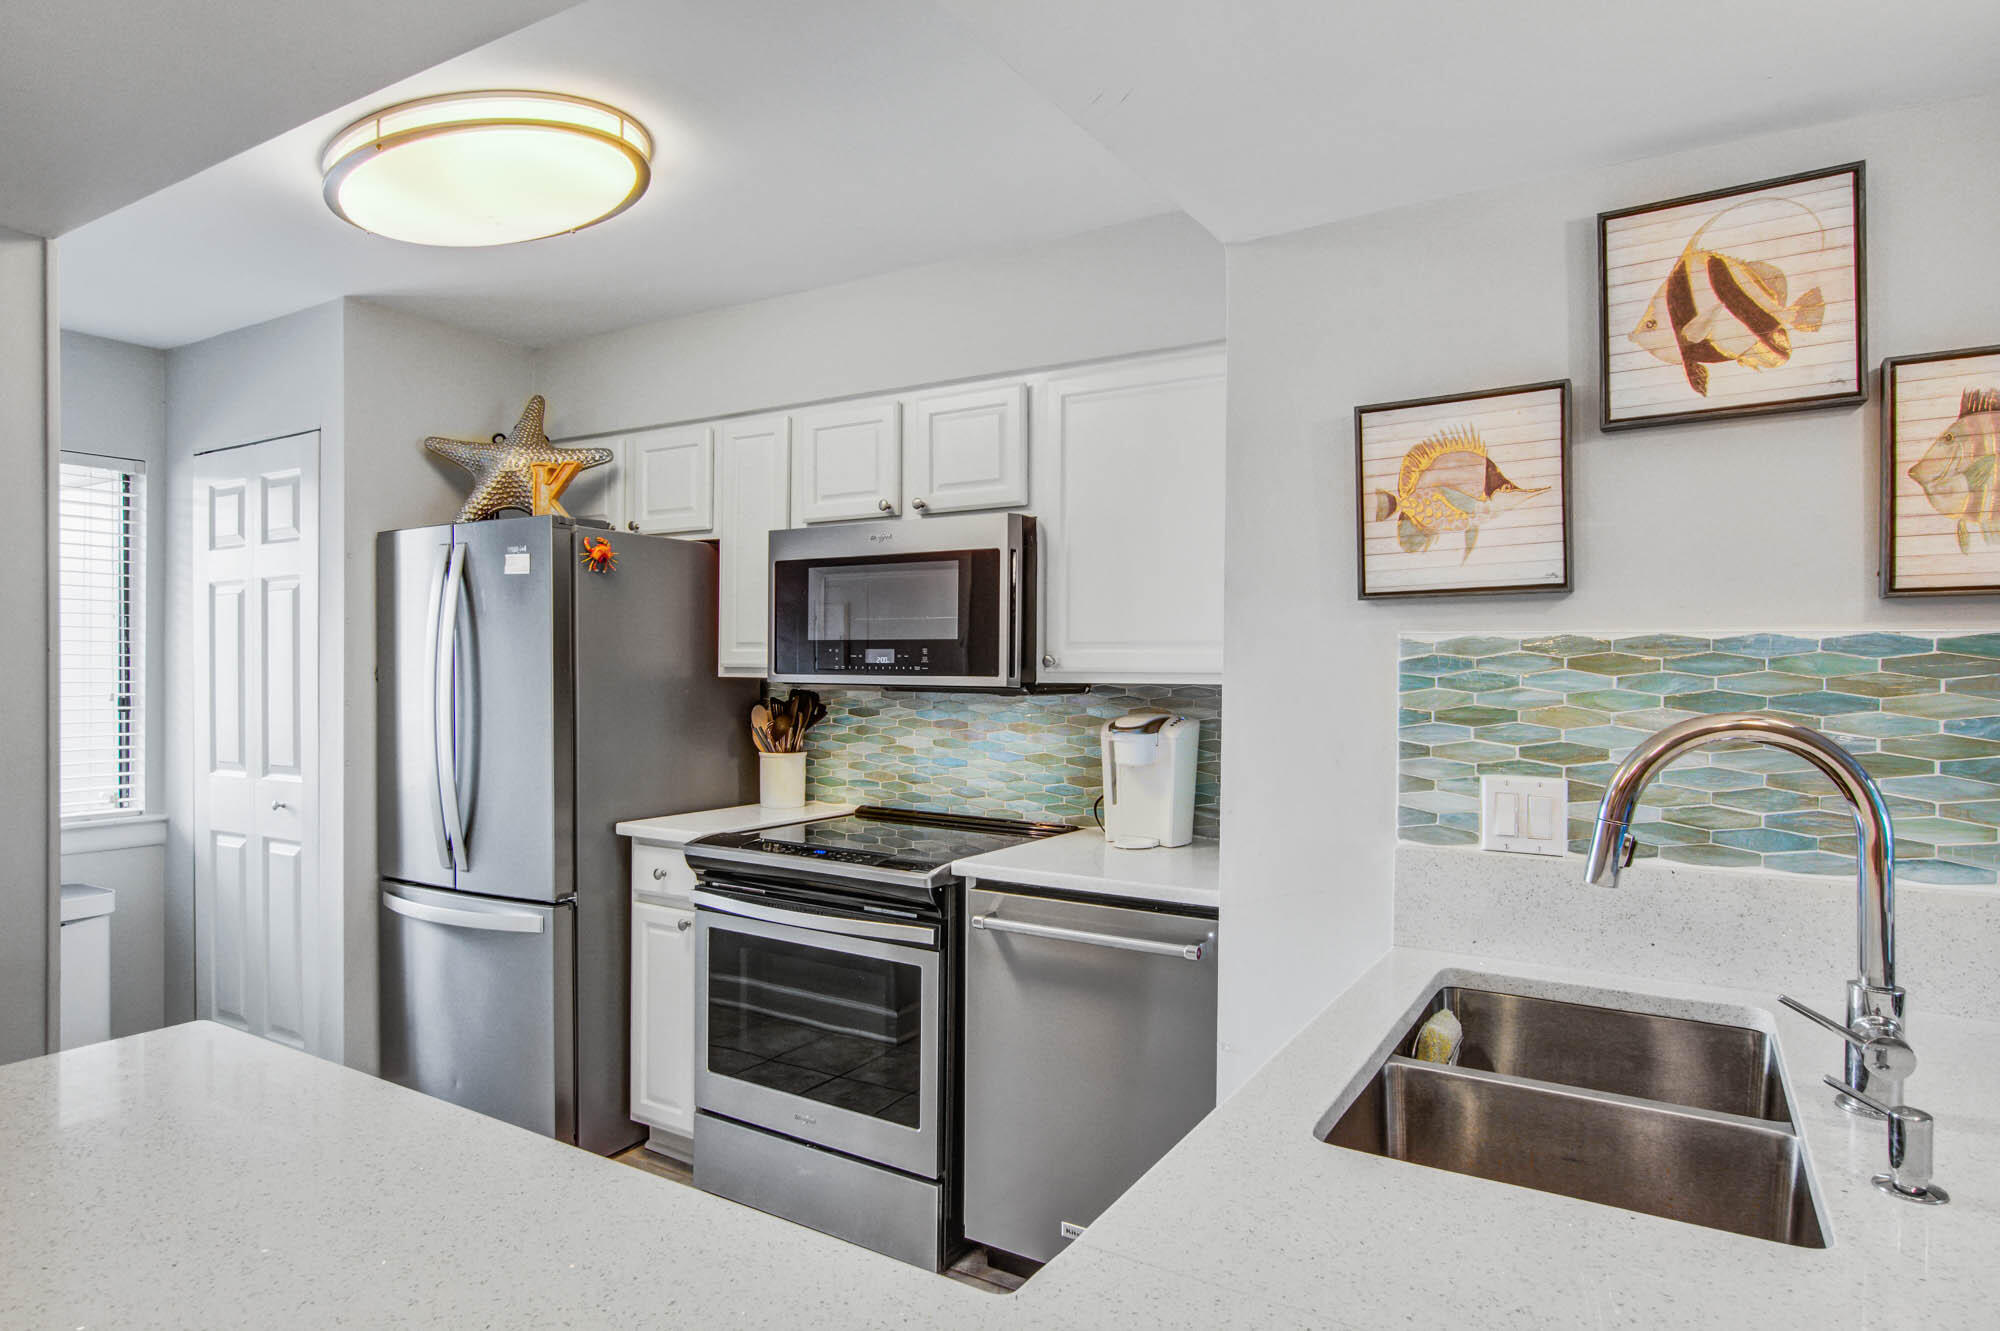 Mariners Cay Homes For Sale - 56 Mariners Cay, Folly Beach, SC - 17